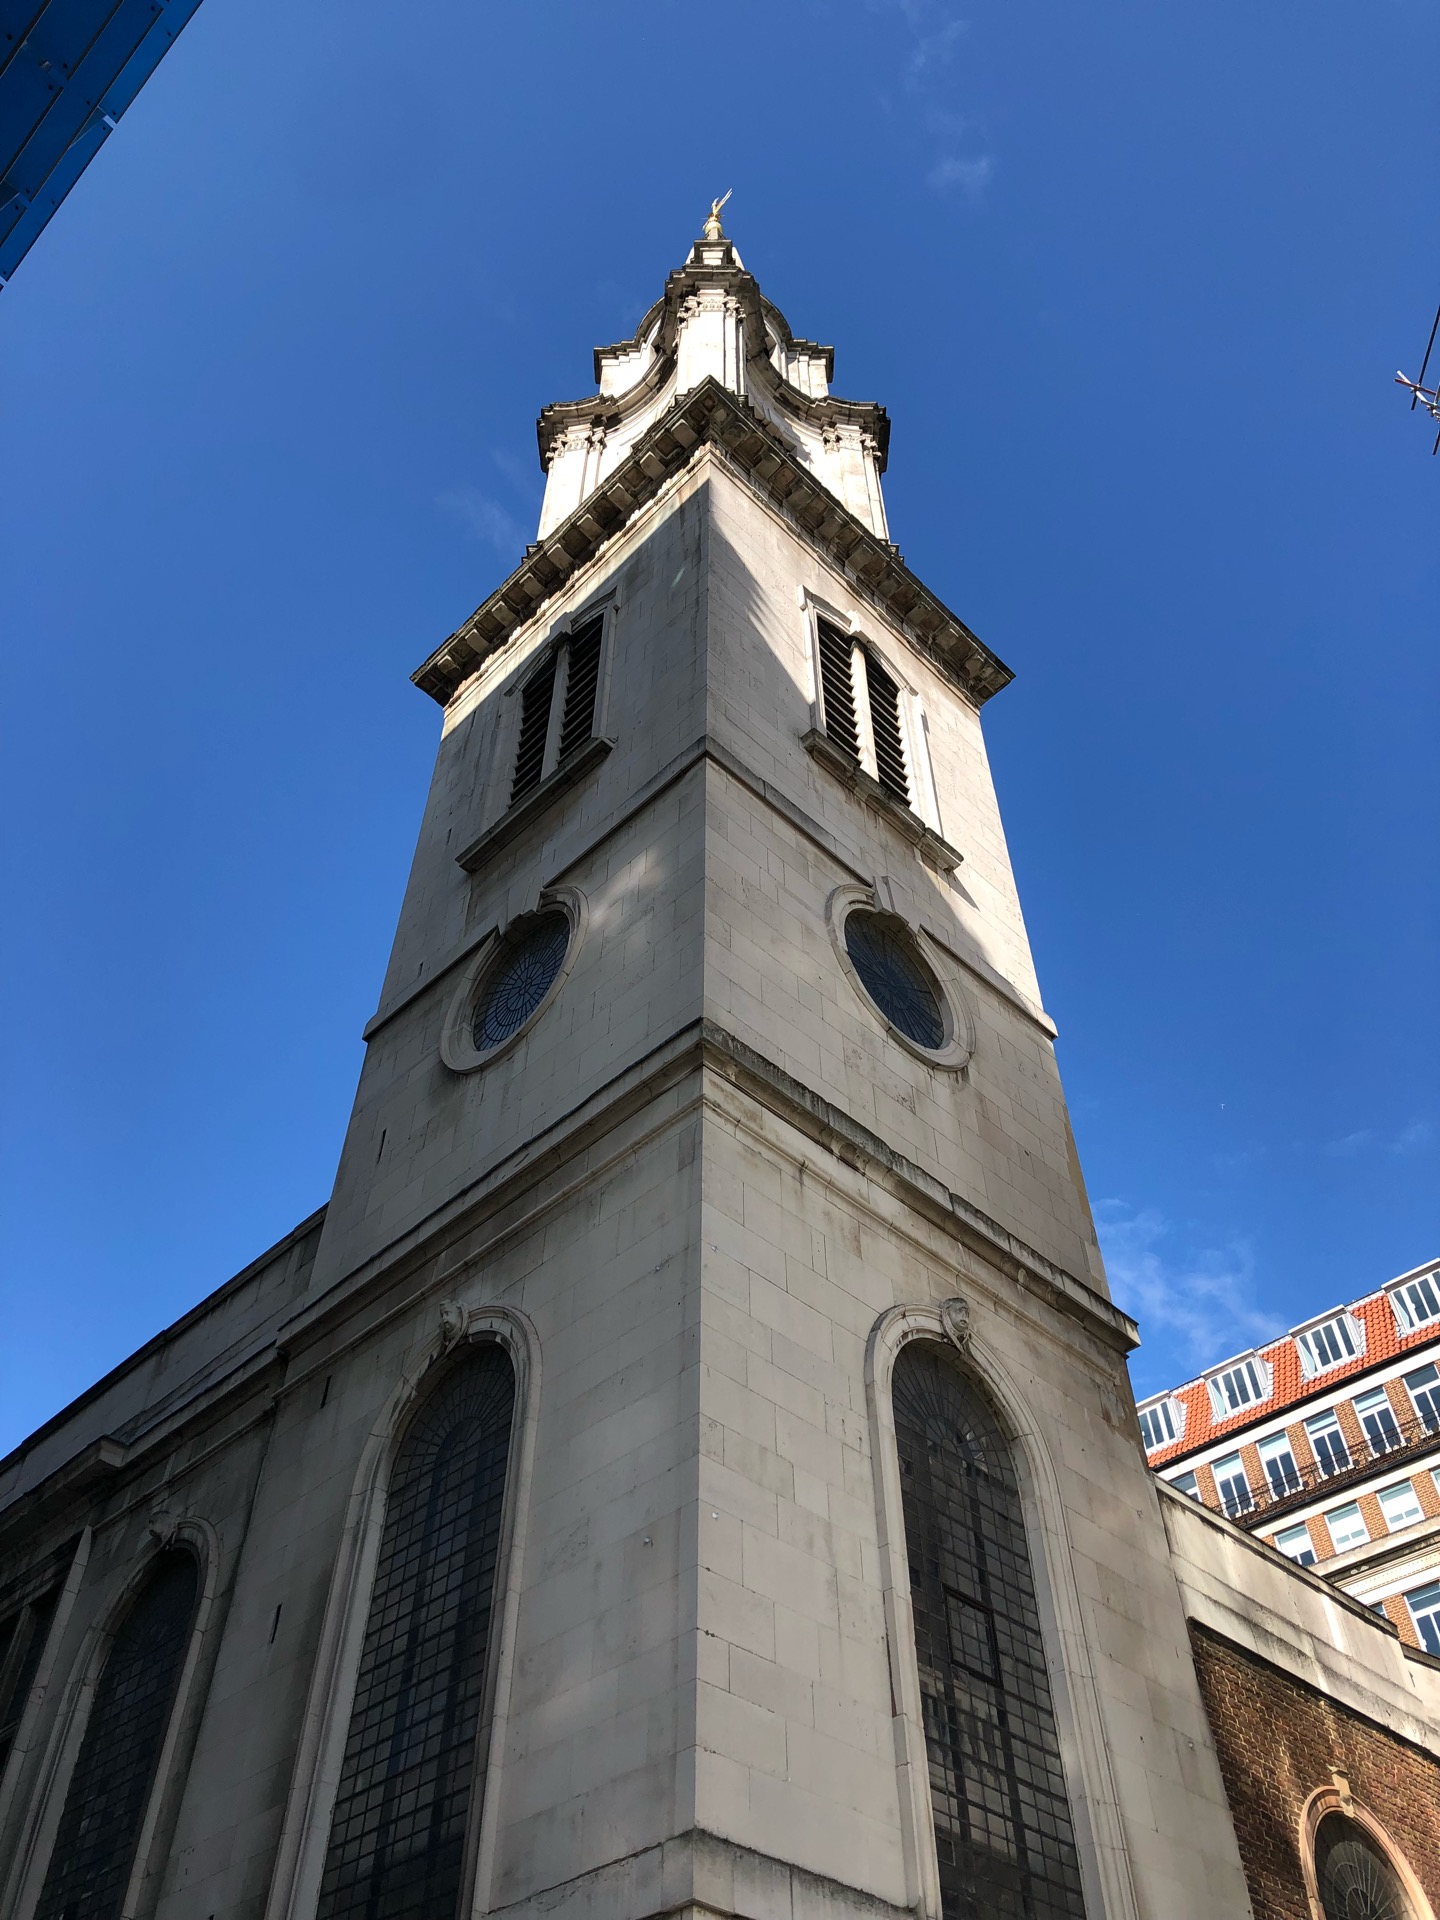 The Church Of St. Vedast alias Foster | 4 Foster Lane, London EC2V 6HH | +44 20 7606 3998